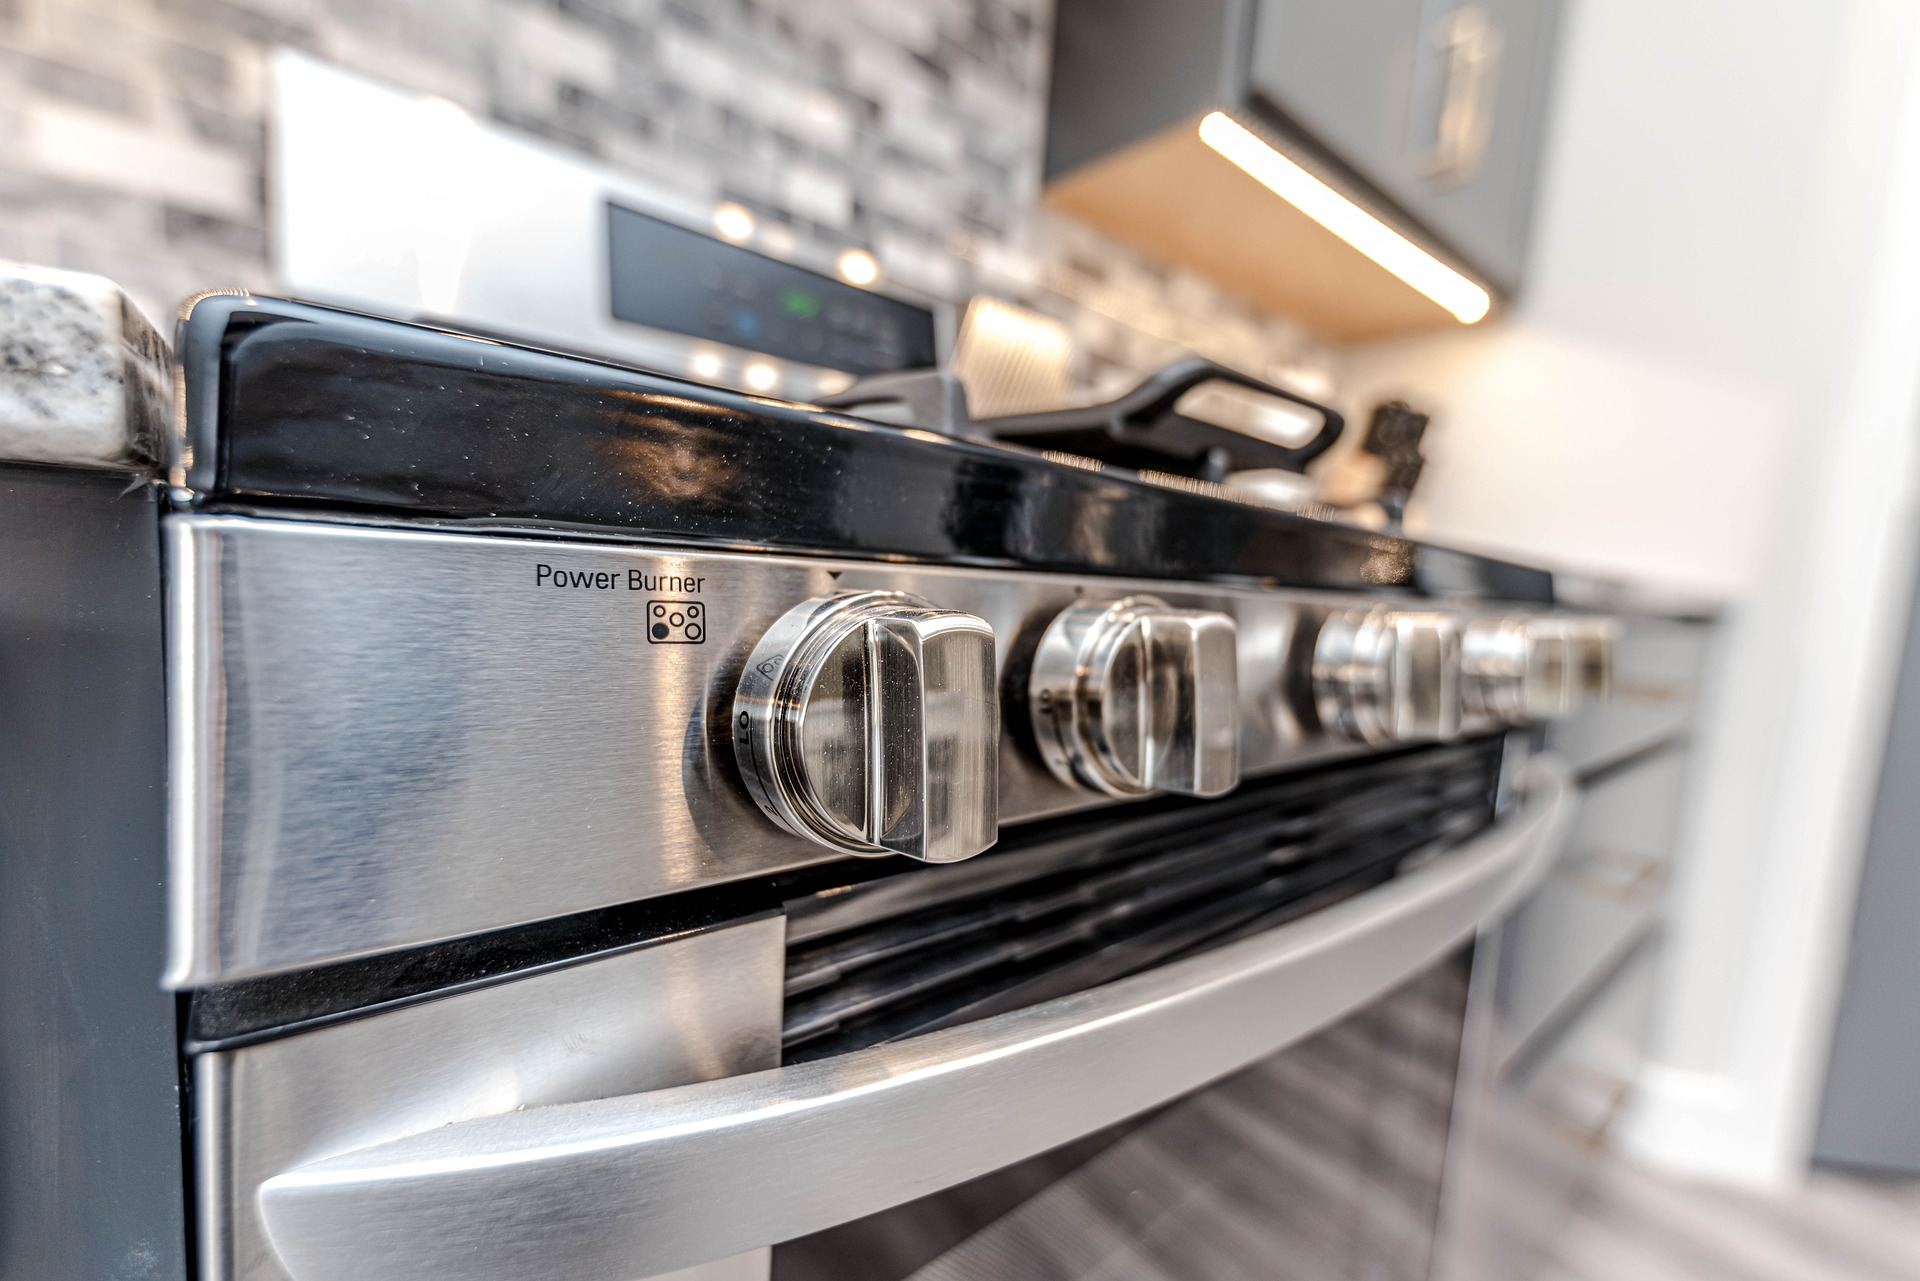 stove and oven dials